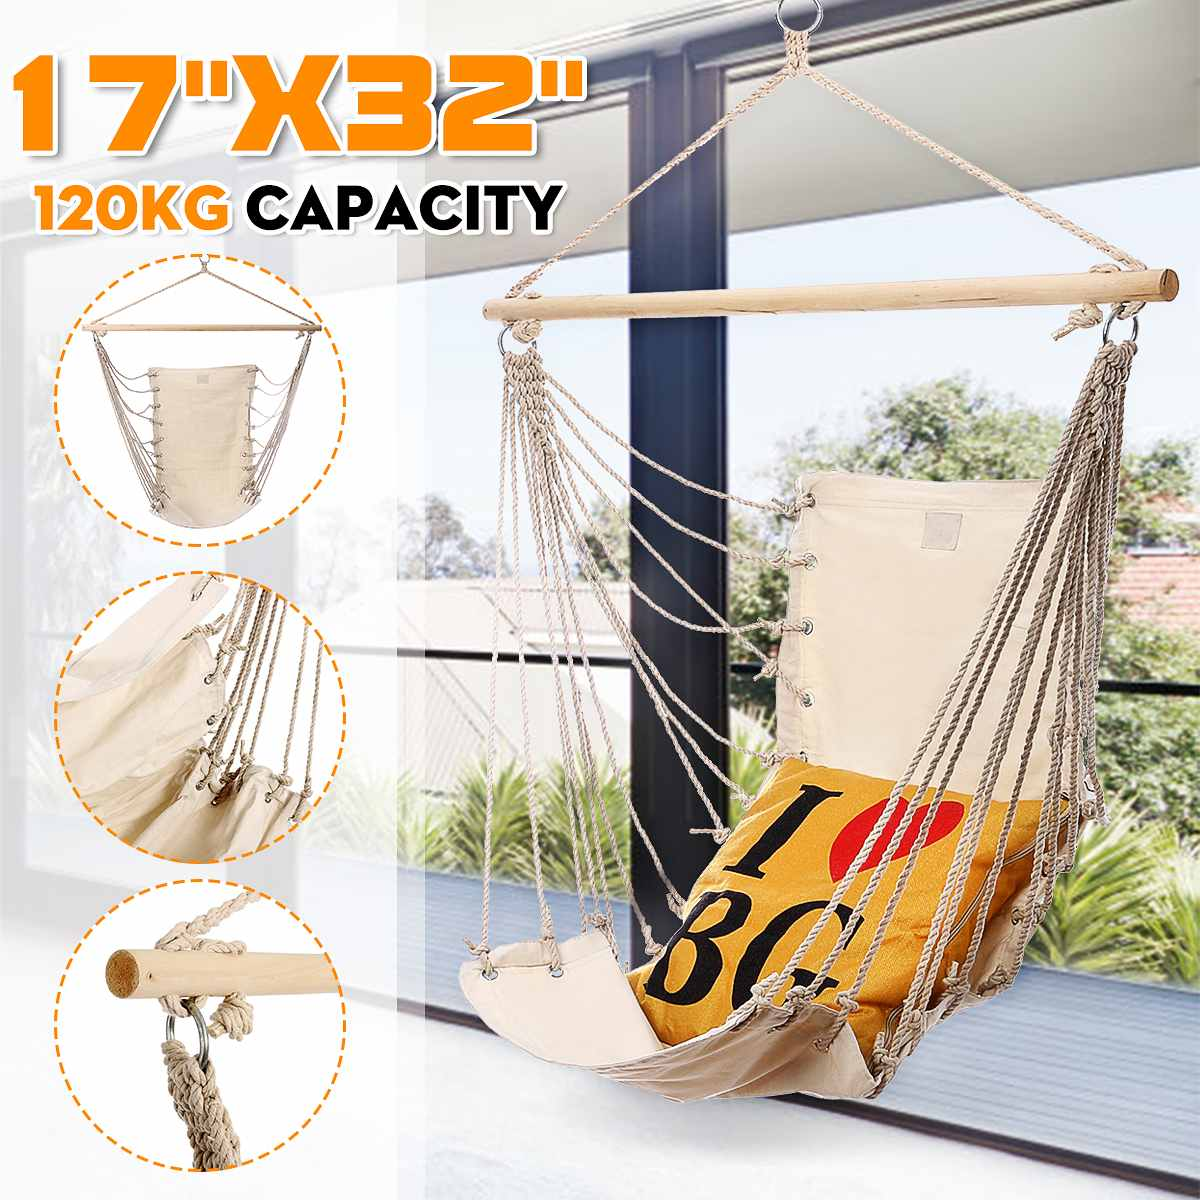 Portable Travel Camping Hanging Hammock Home Bedroom Swing Bed Lazy Chair For Garden Indoor Outdoor Fashionable Hammock Swings